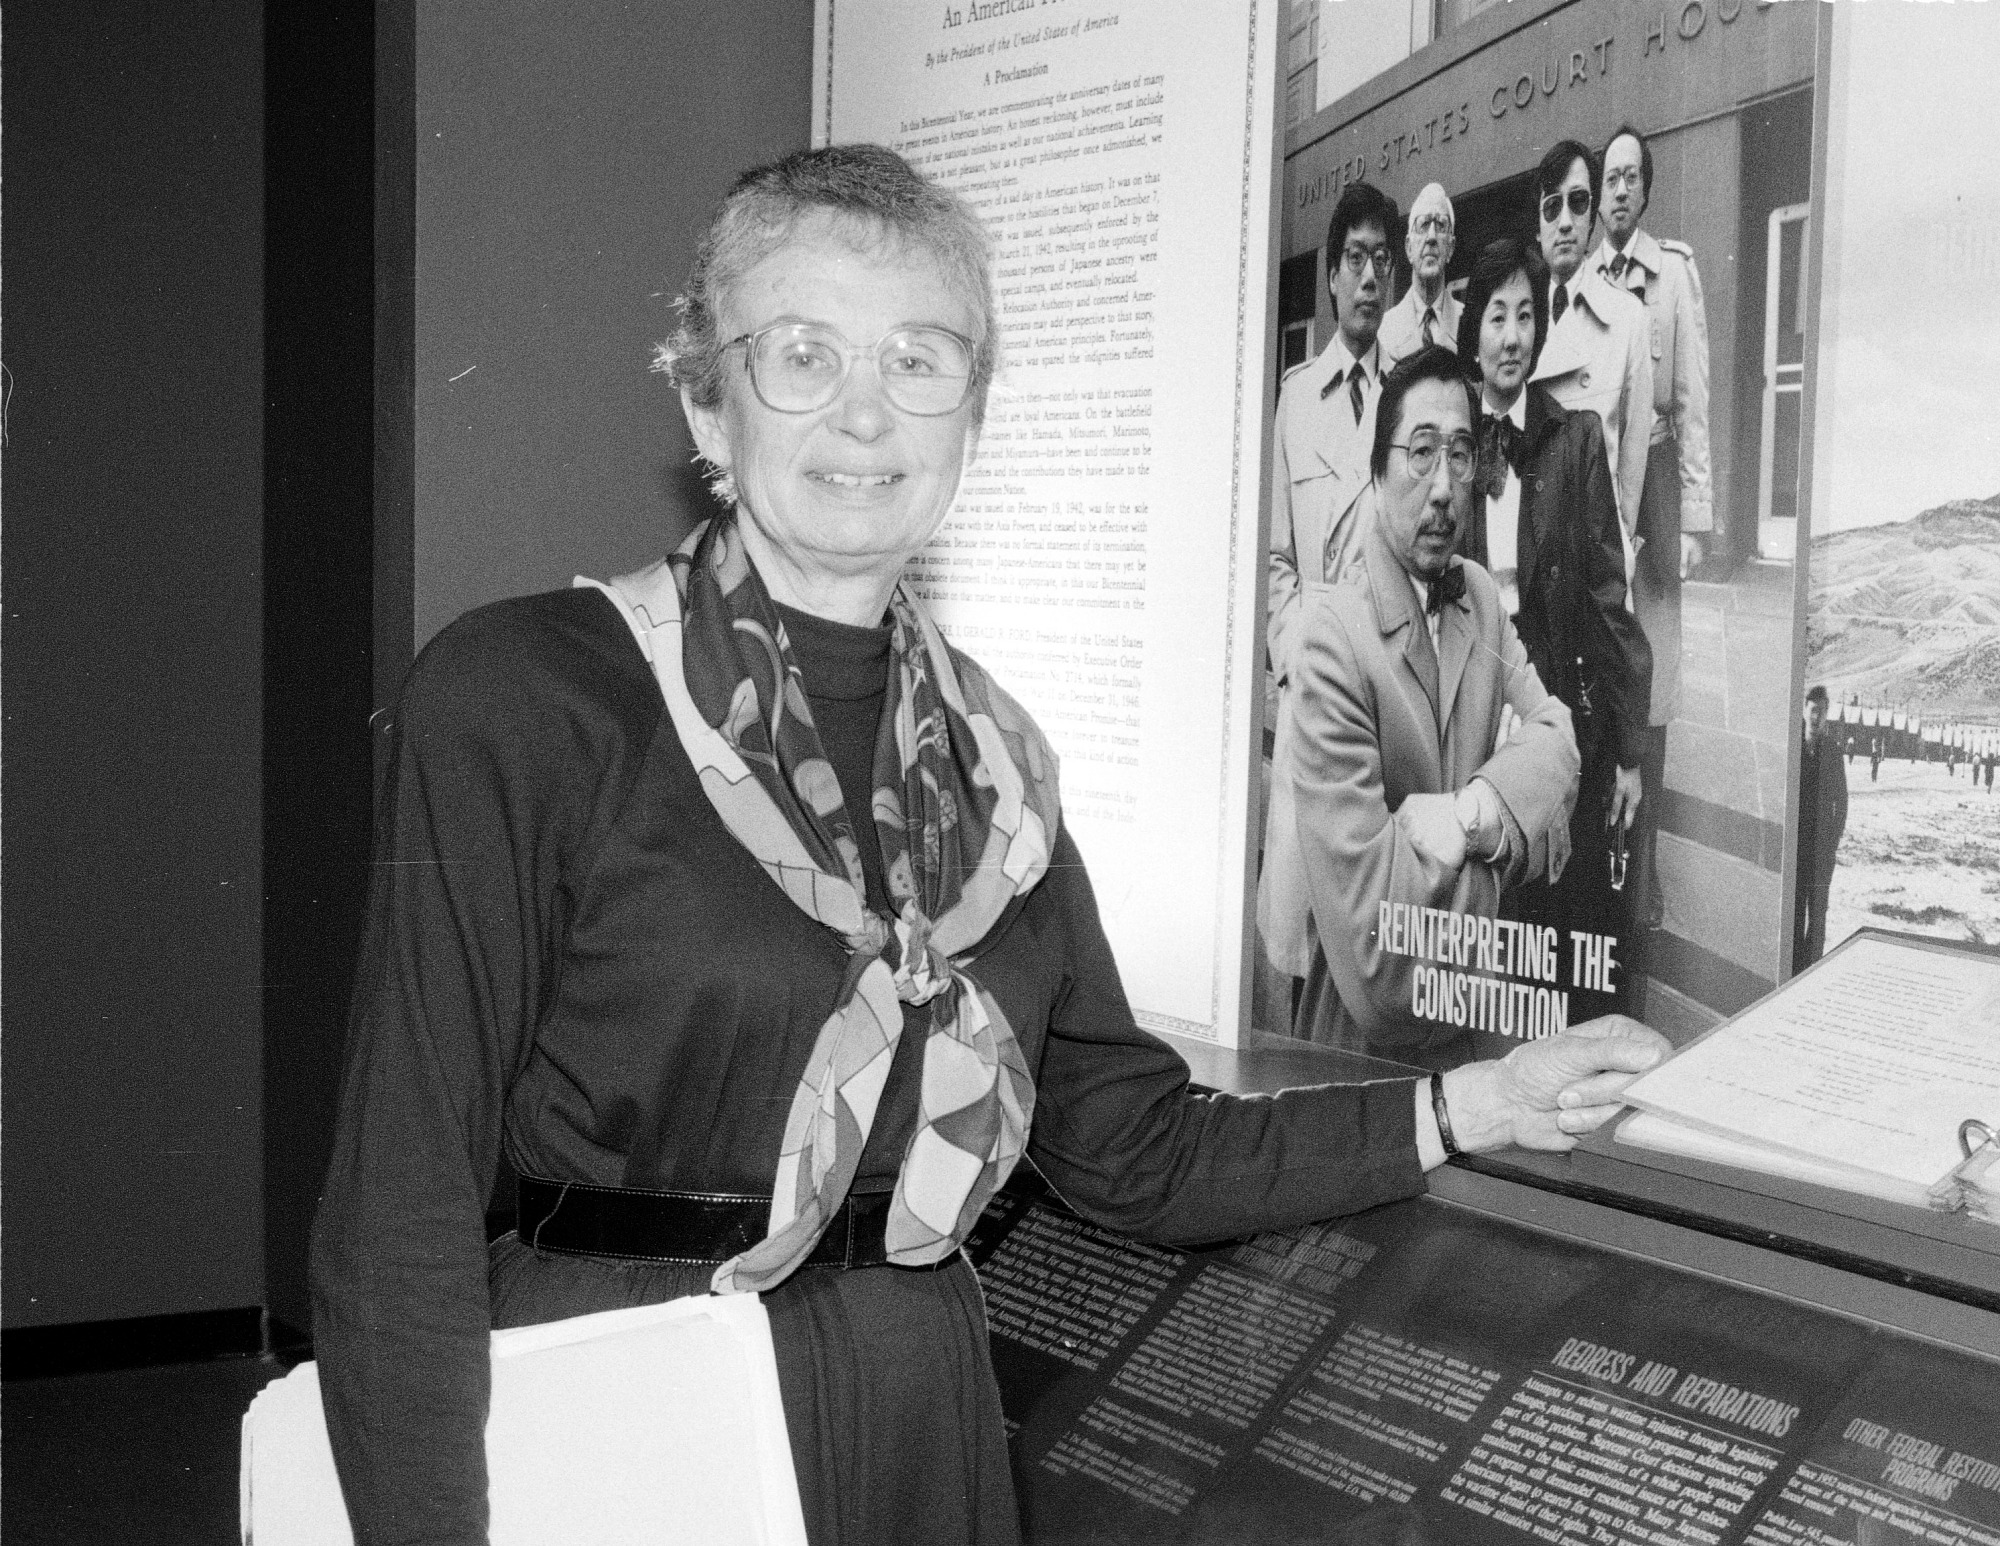 Shirley Cherkasky, by Vargas, Rick, 1991, Smithsonian Archives - History Div, 91-17383-19.